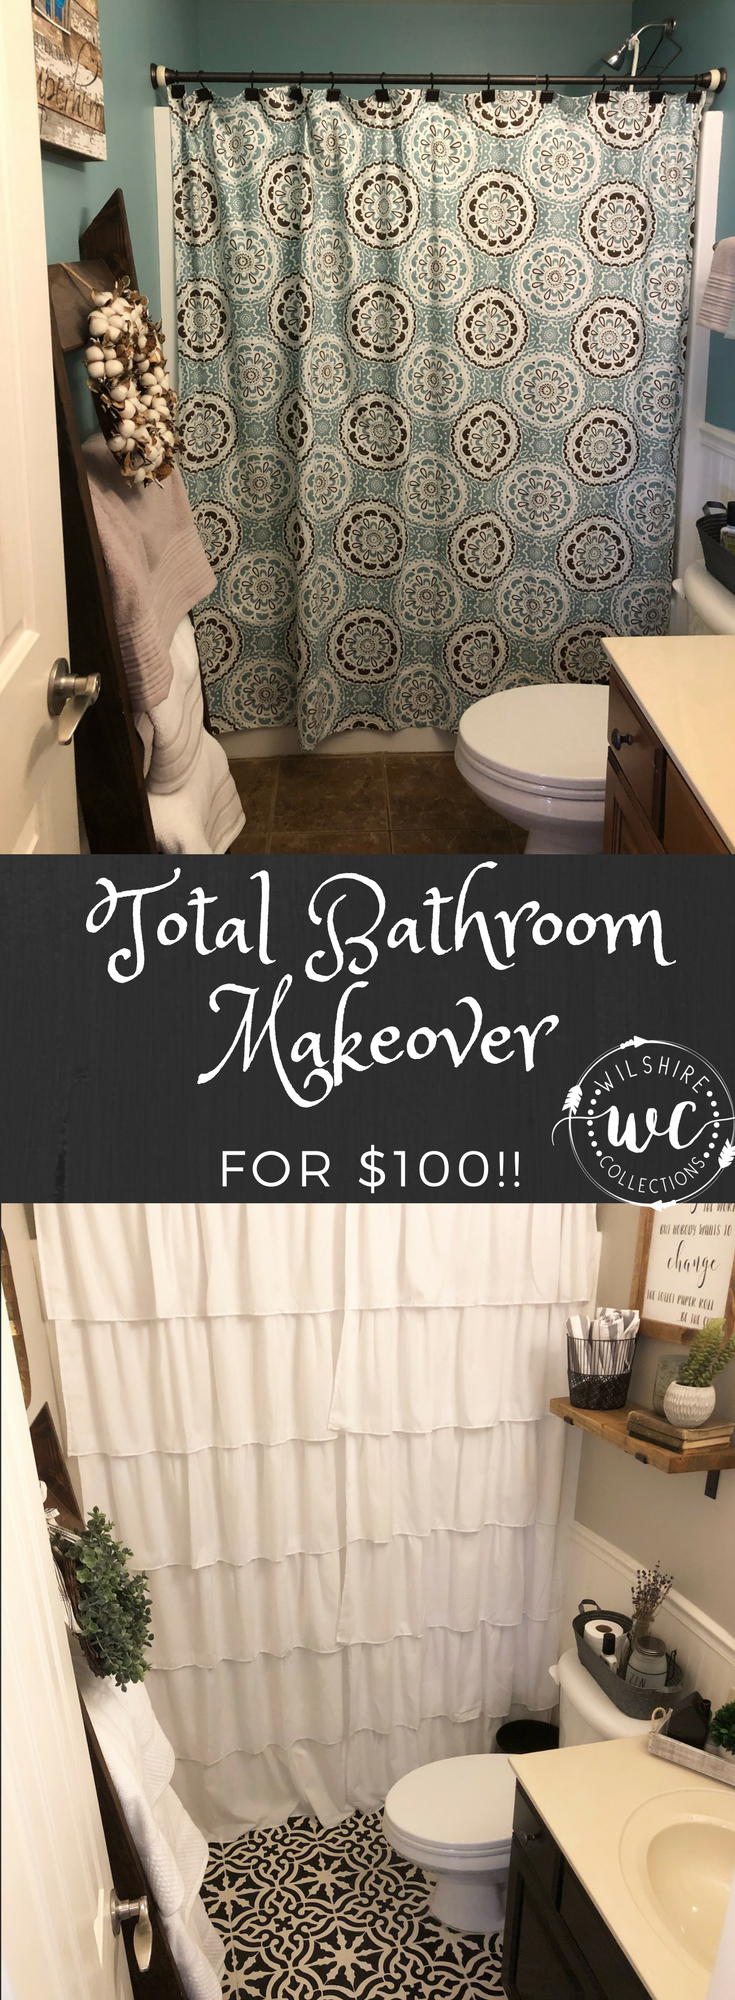 Total bathroom makeover for $100! A tutorial on how to stencil your tile floors!